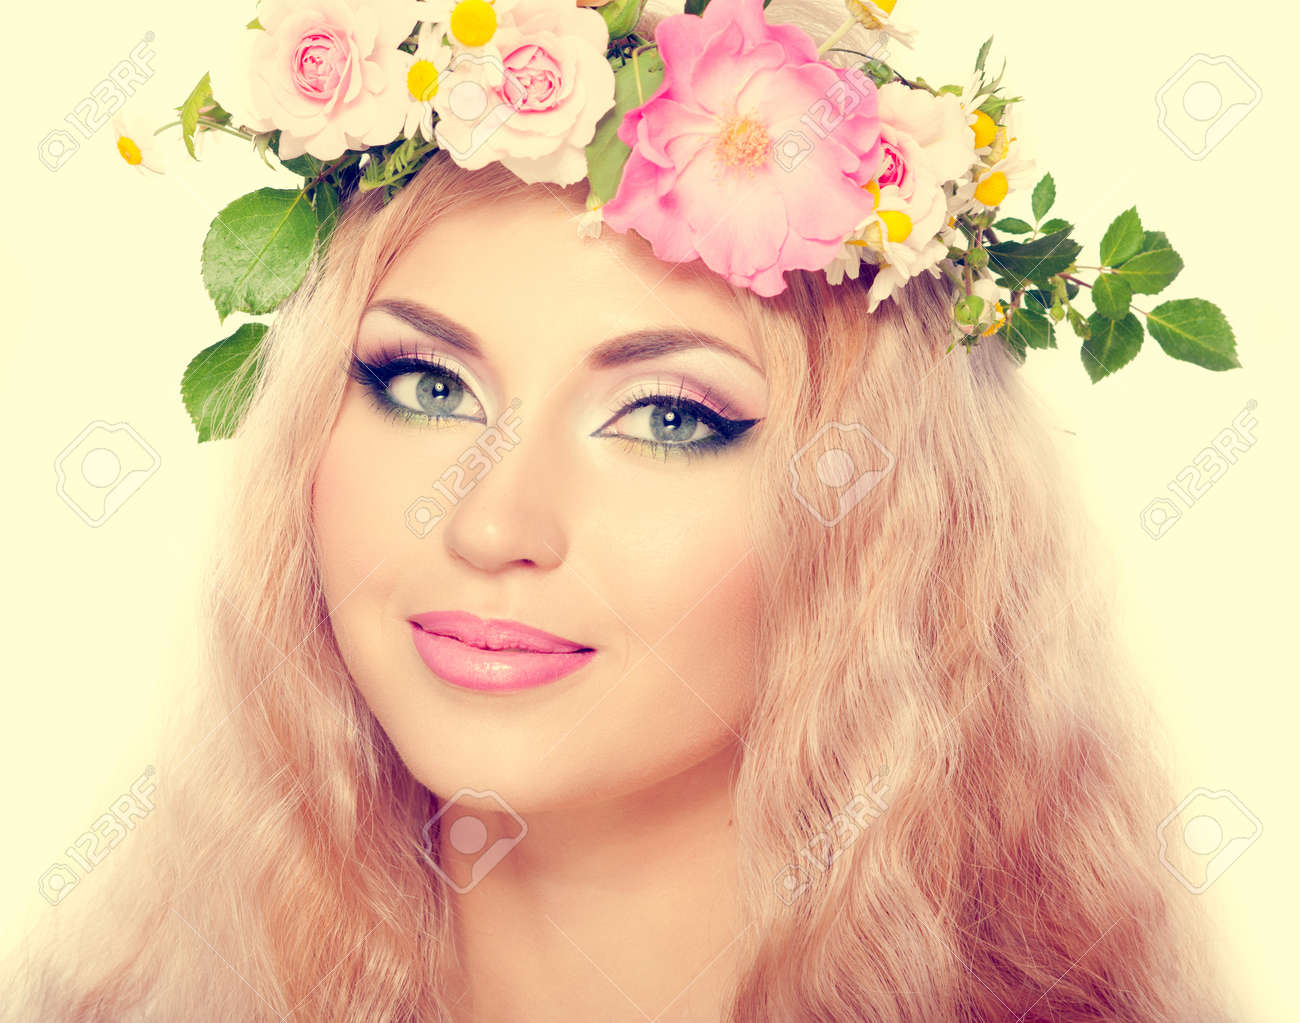 Beautiful woman with bright makeup and blonde long hair with beautiful woman with bright makeup and blonde long hair with flowers stock photo 29391132 dhlflorist Gallery